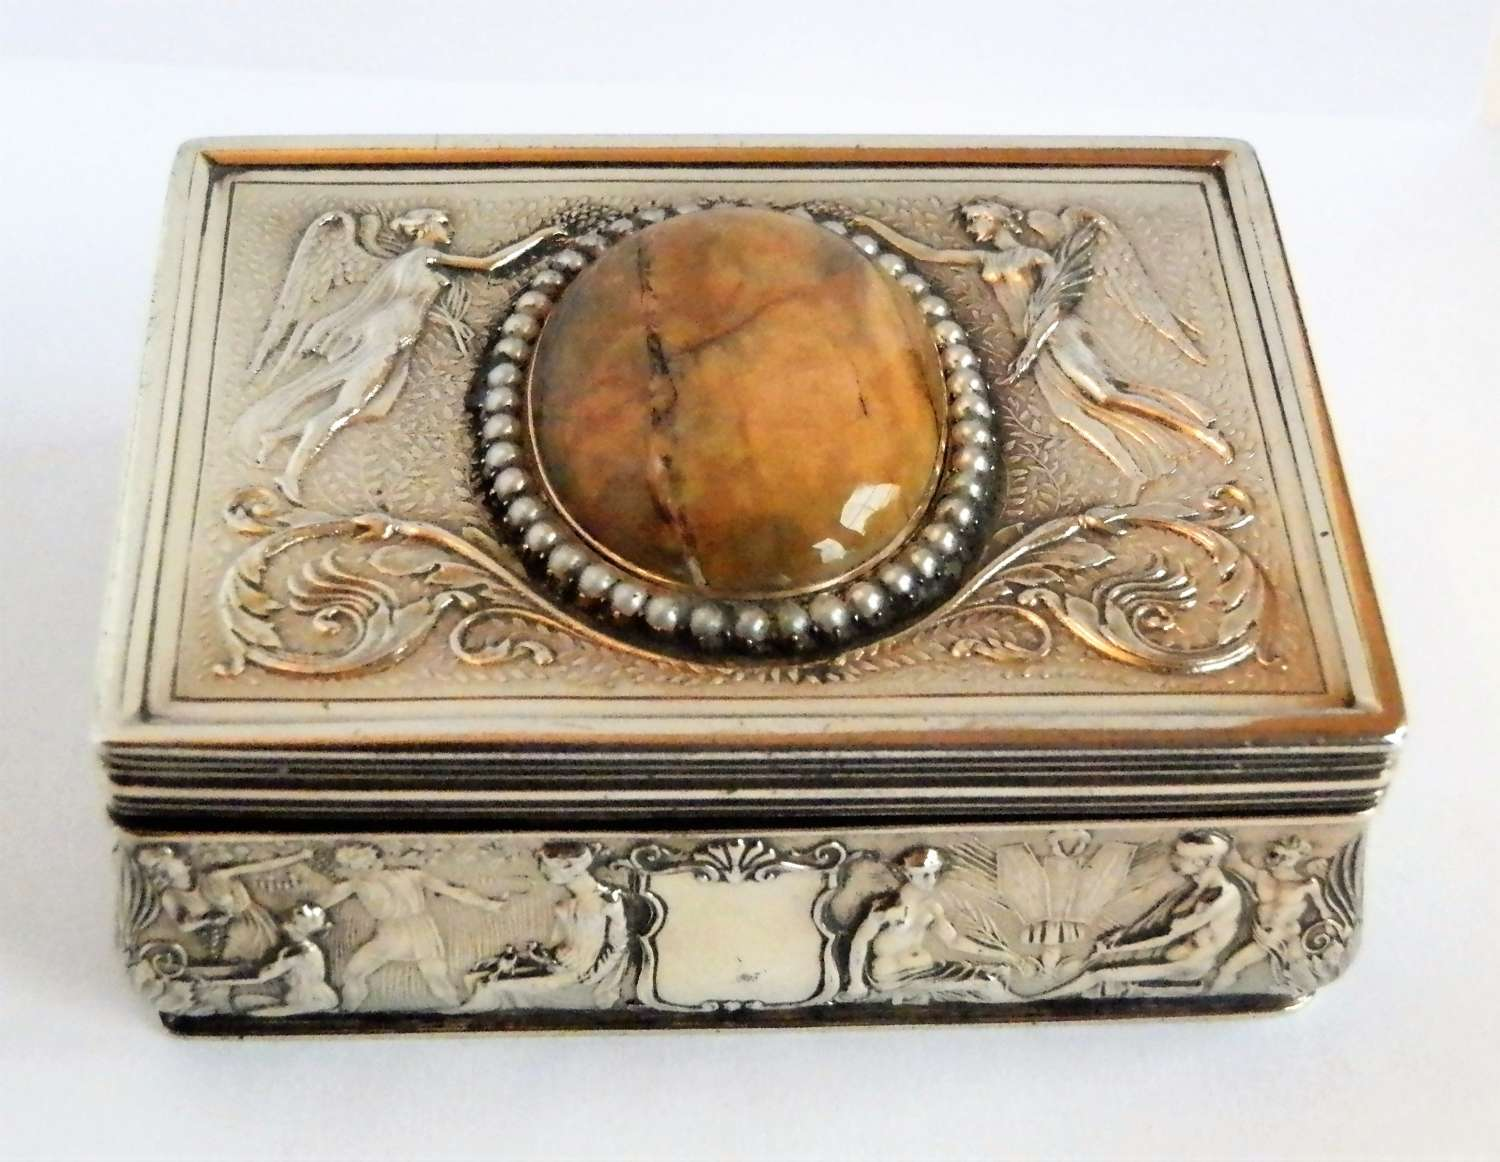 Edwardian silver gilt snuff box by Garrards, 1909